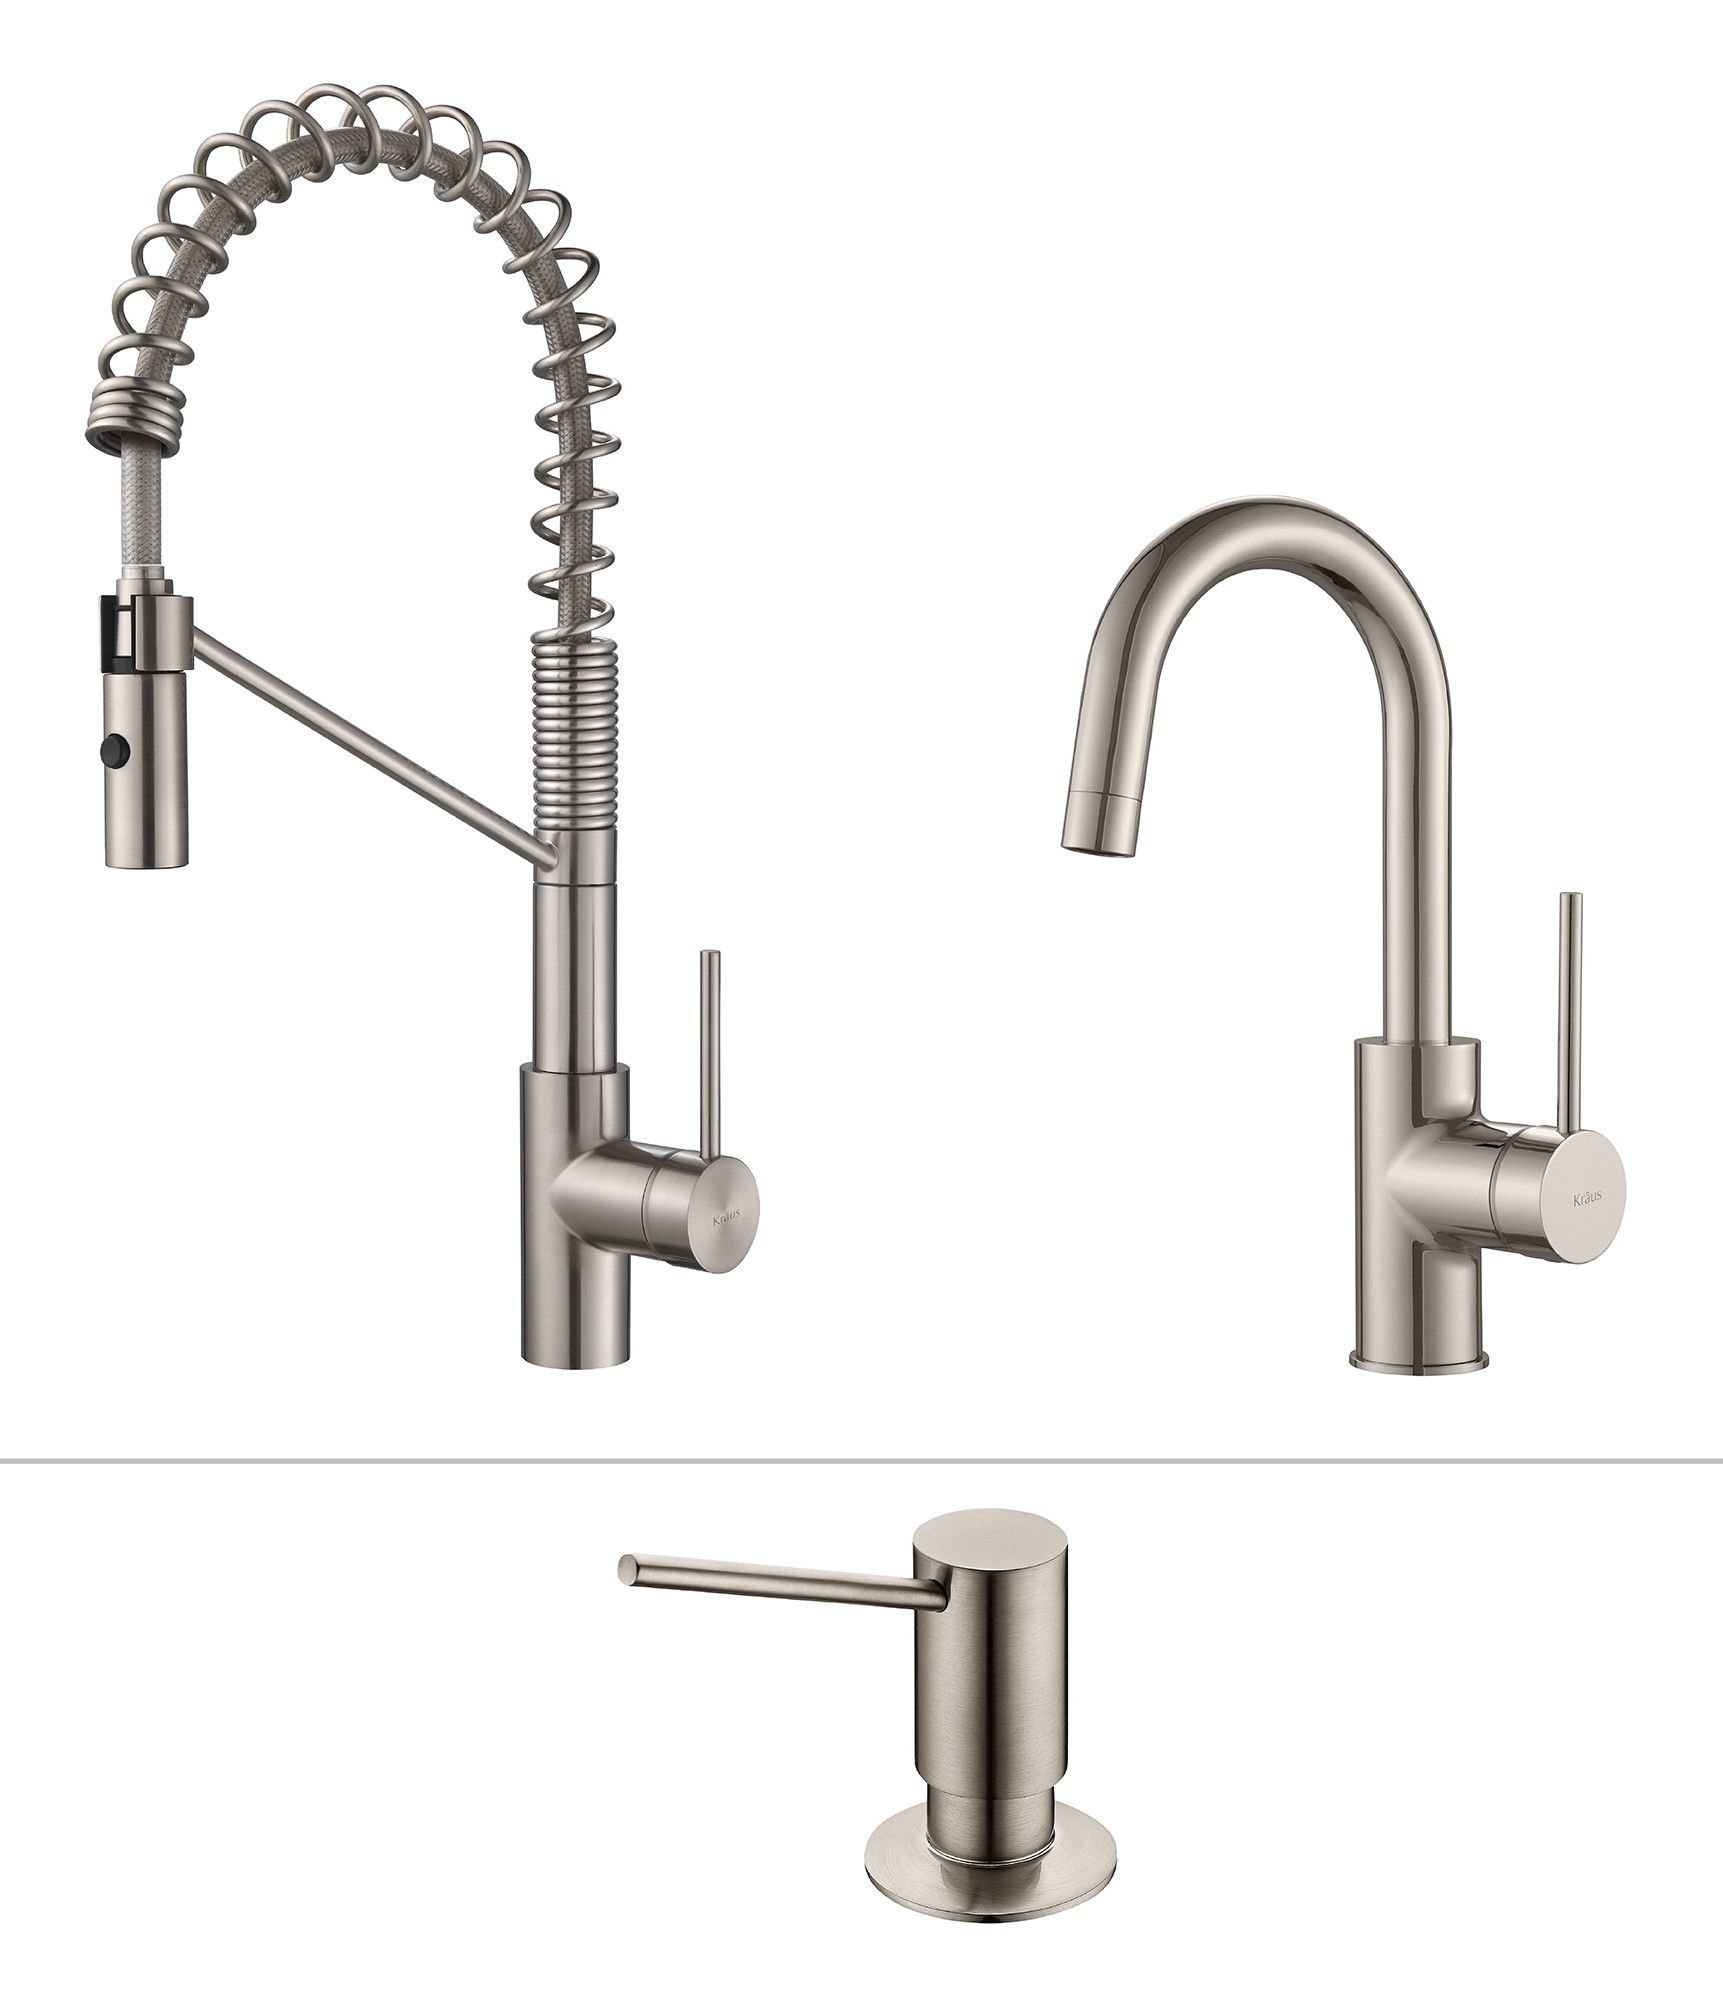 mateo commercial style kitchen faucet w bar prep faucet with soap rh pinterest ca